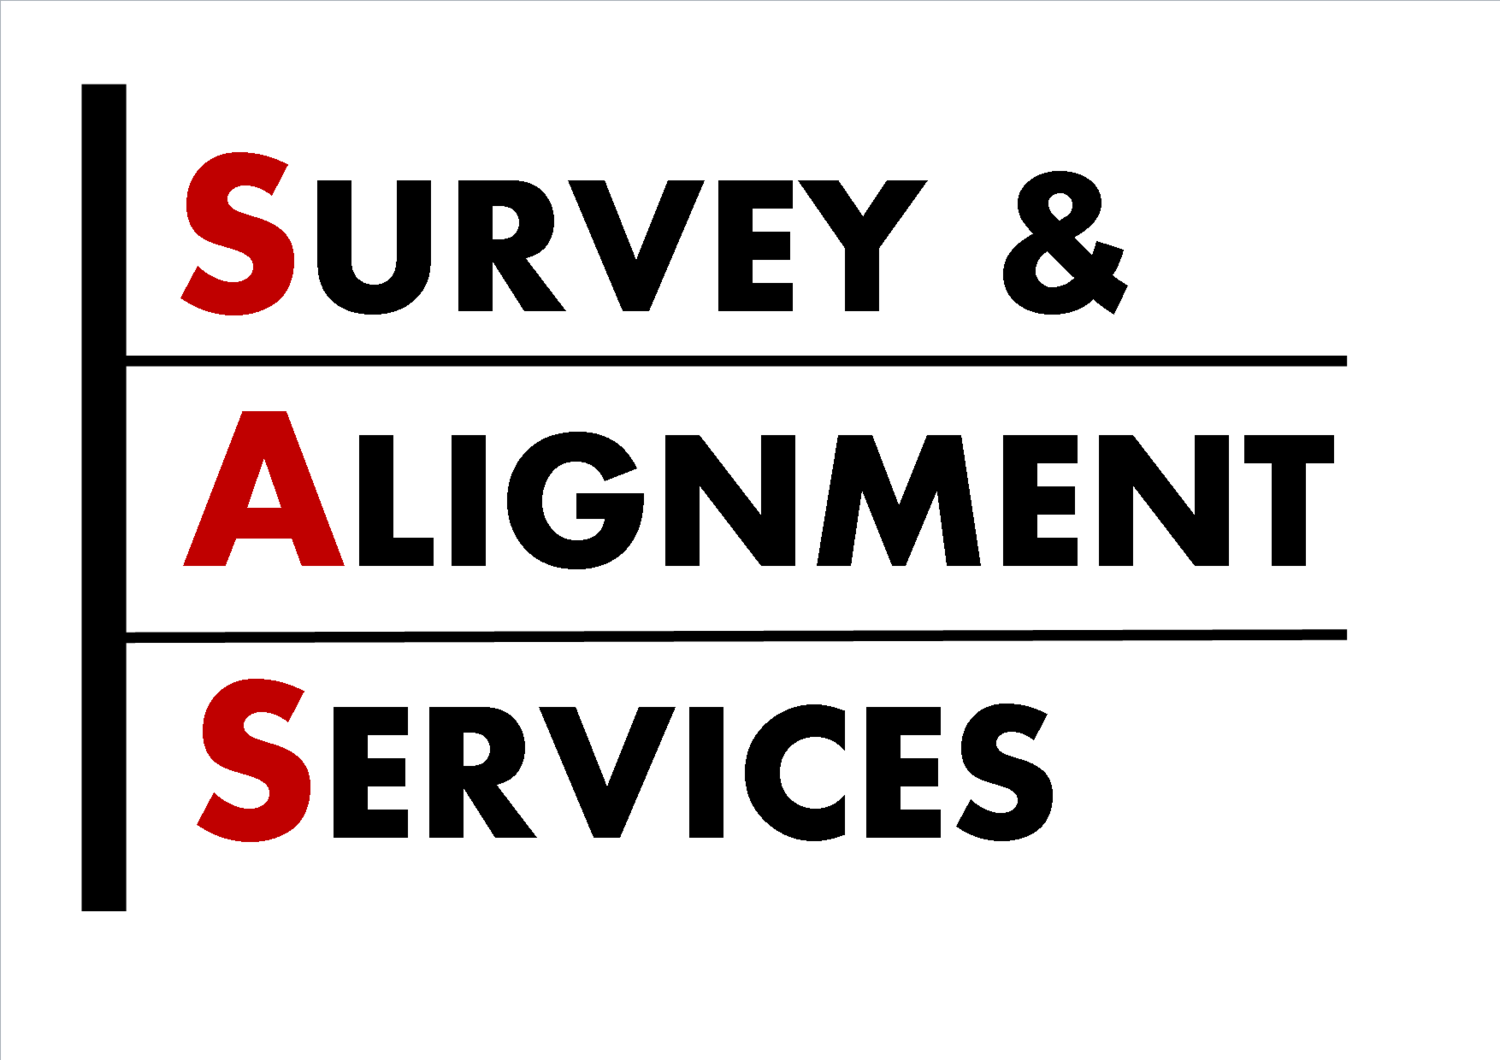 Survey & Alignment Services